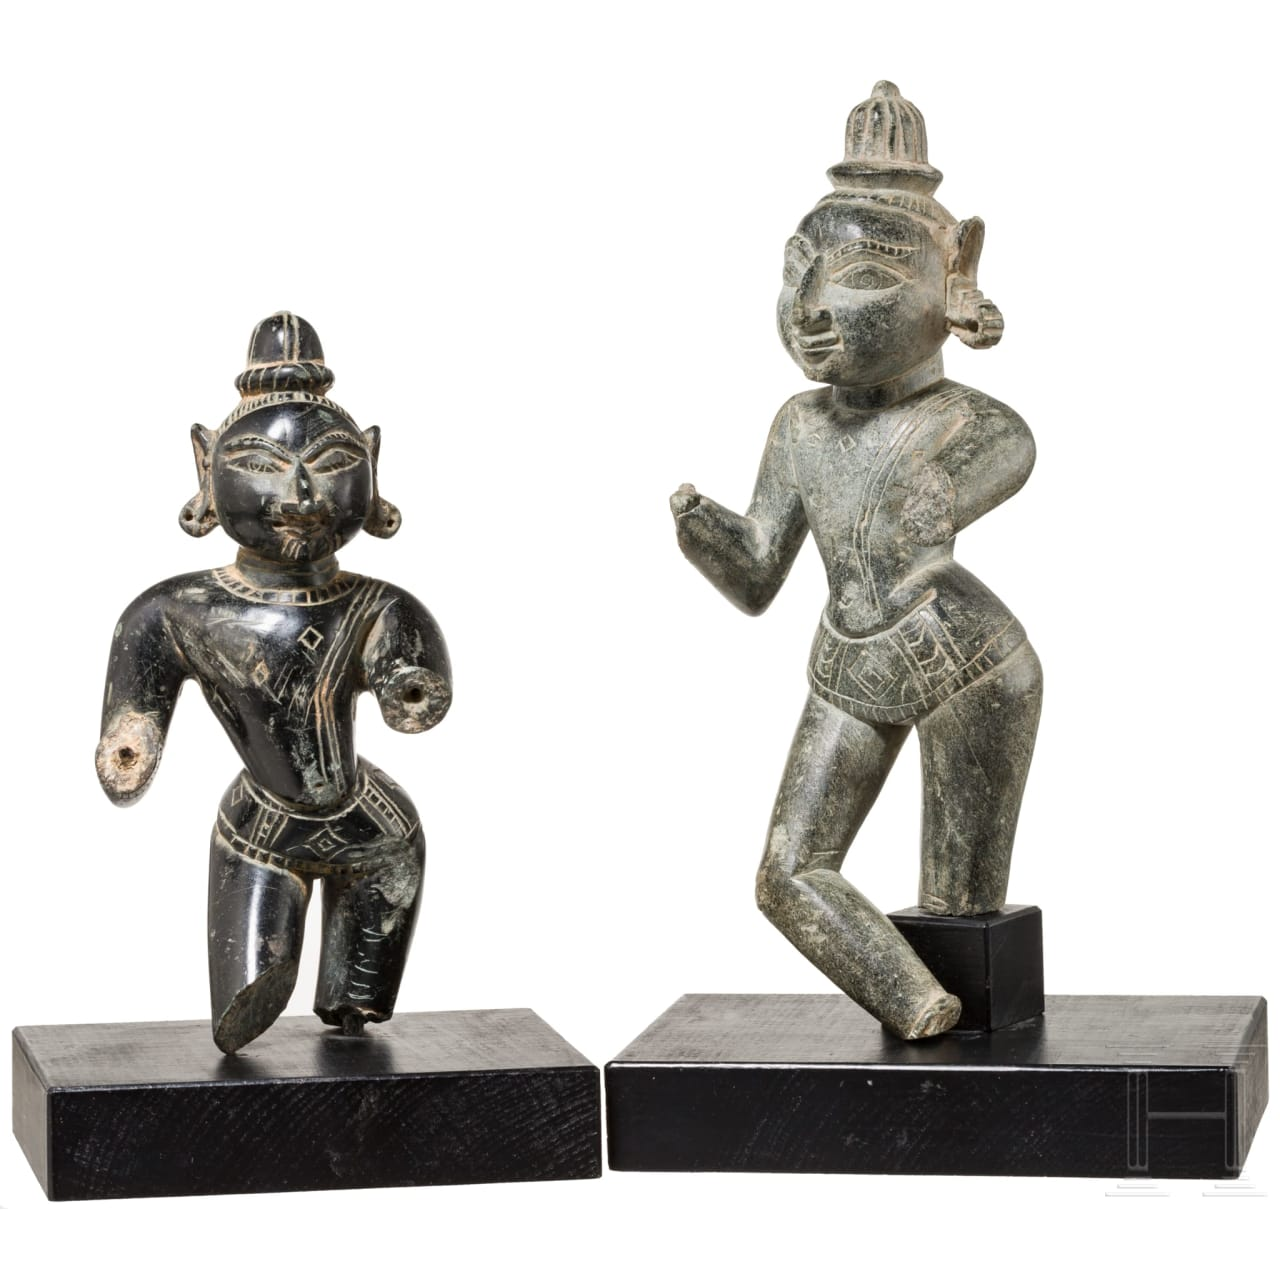 Two figures of Indian divinities, 19th century